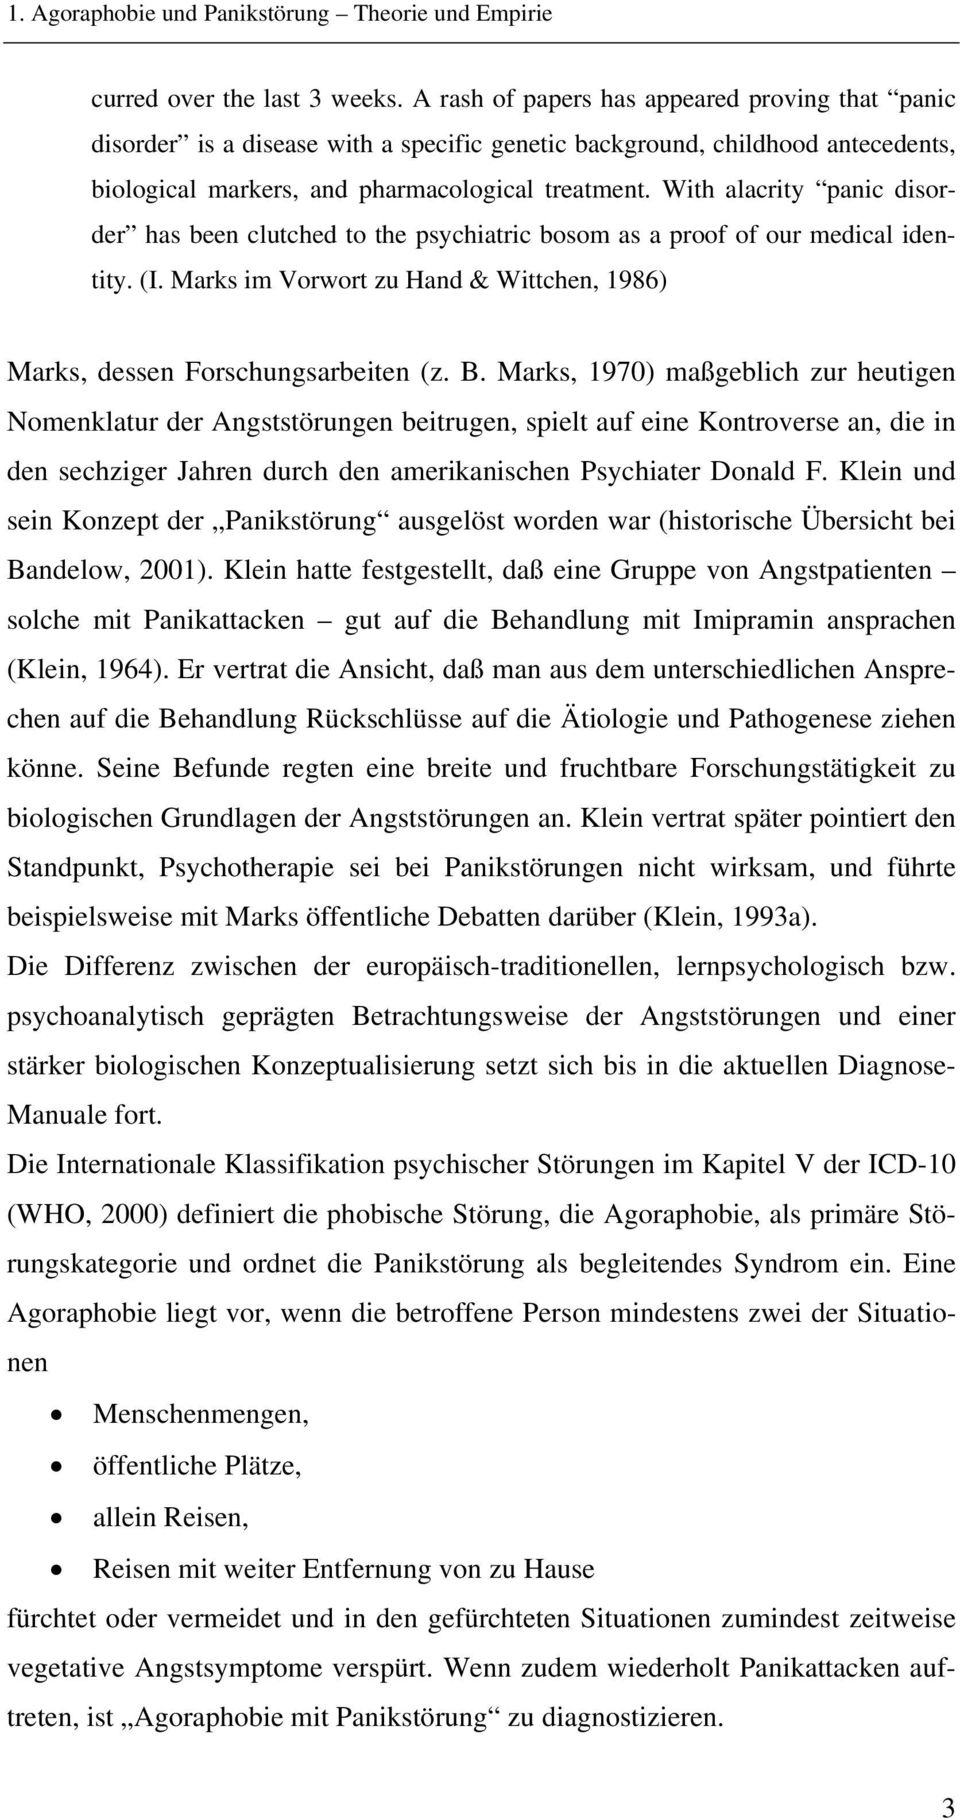 With alacrity panic disorder has been clutched to the psychiatric bosom as a proof of our medical identity. (I. Marks im Vorwort zu Hand & Wittchen, 1986) Marks, dessen Forschungsarbeiten (z. B.